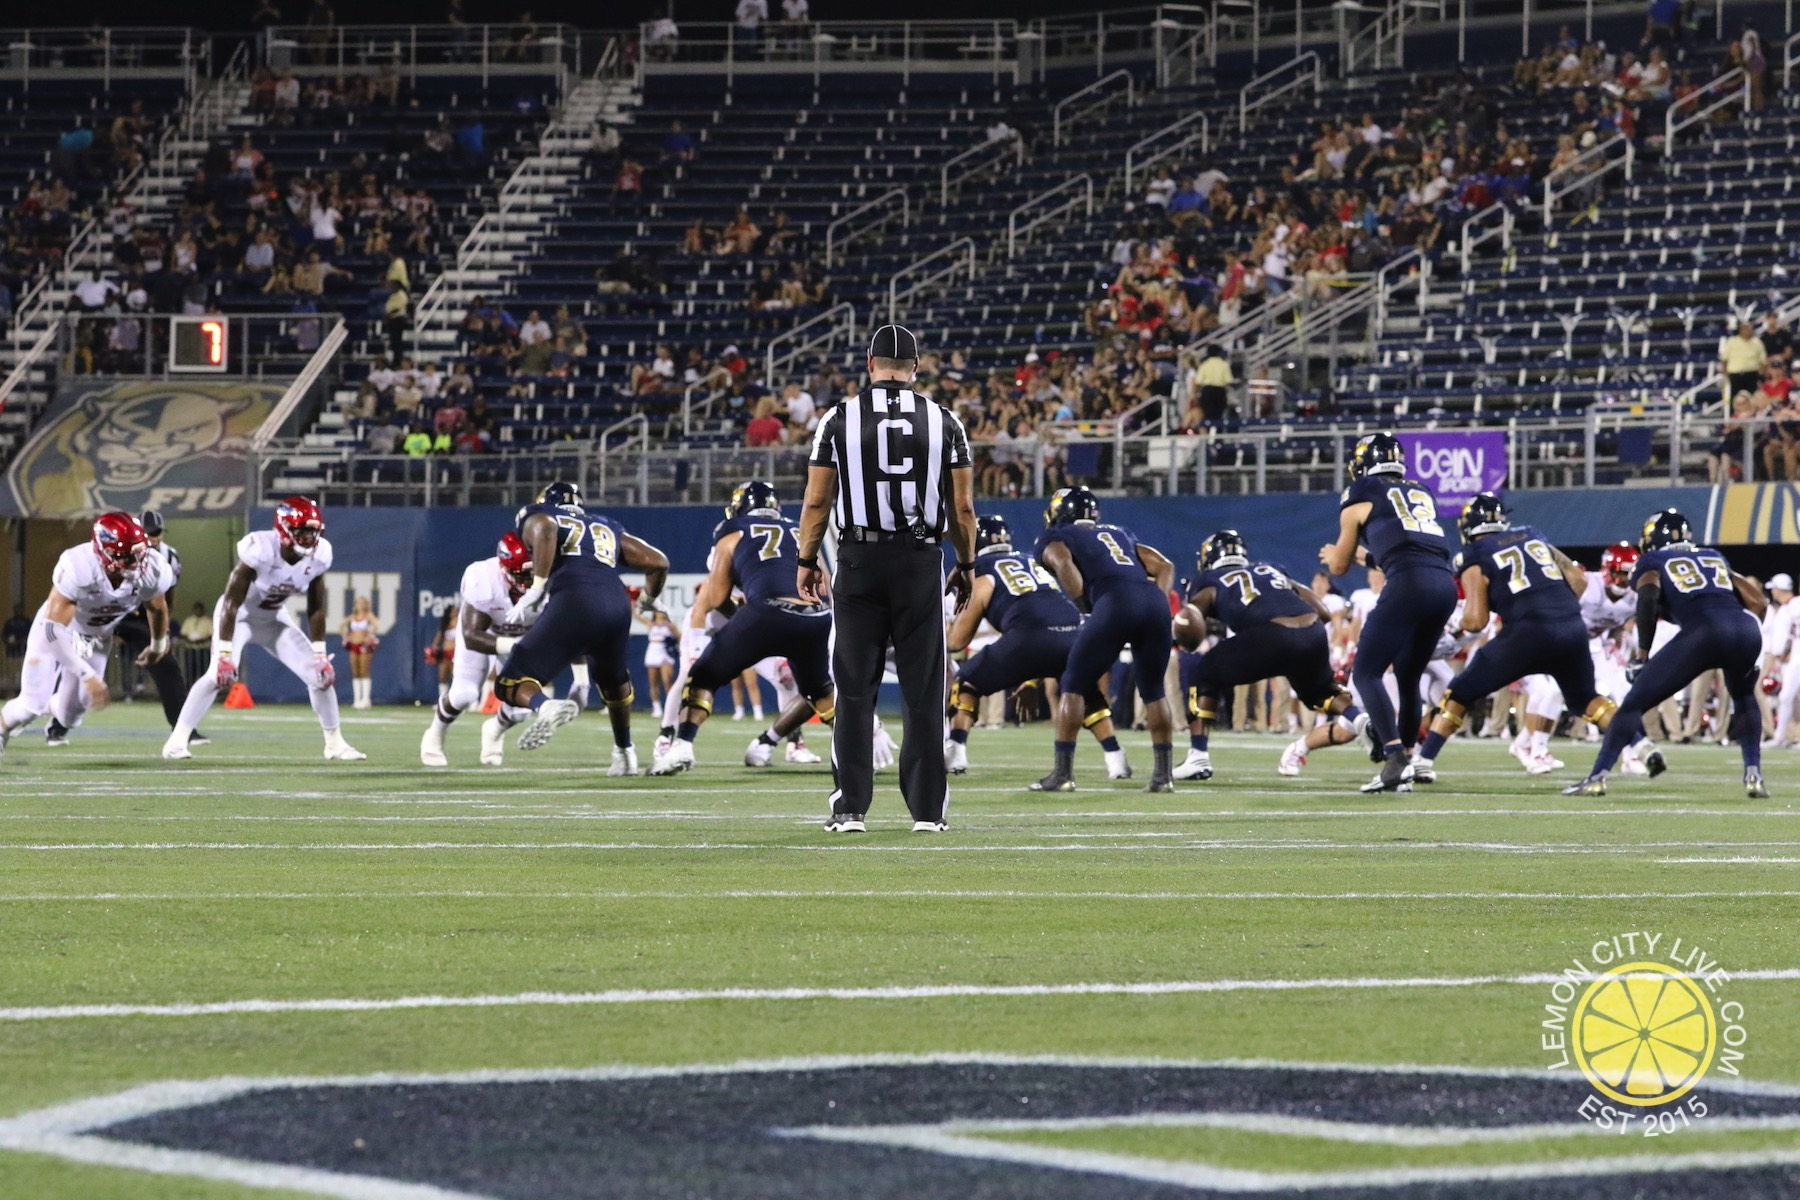 Fiu Panthers Vs Fau Owls Oct 1 2016 Sports News And Media Outlet